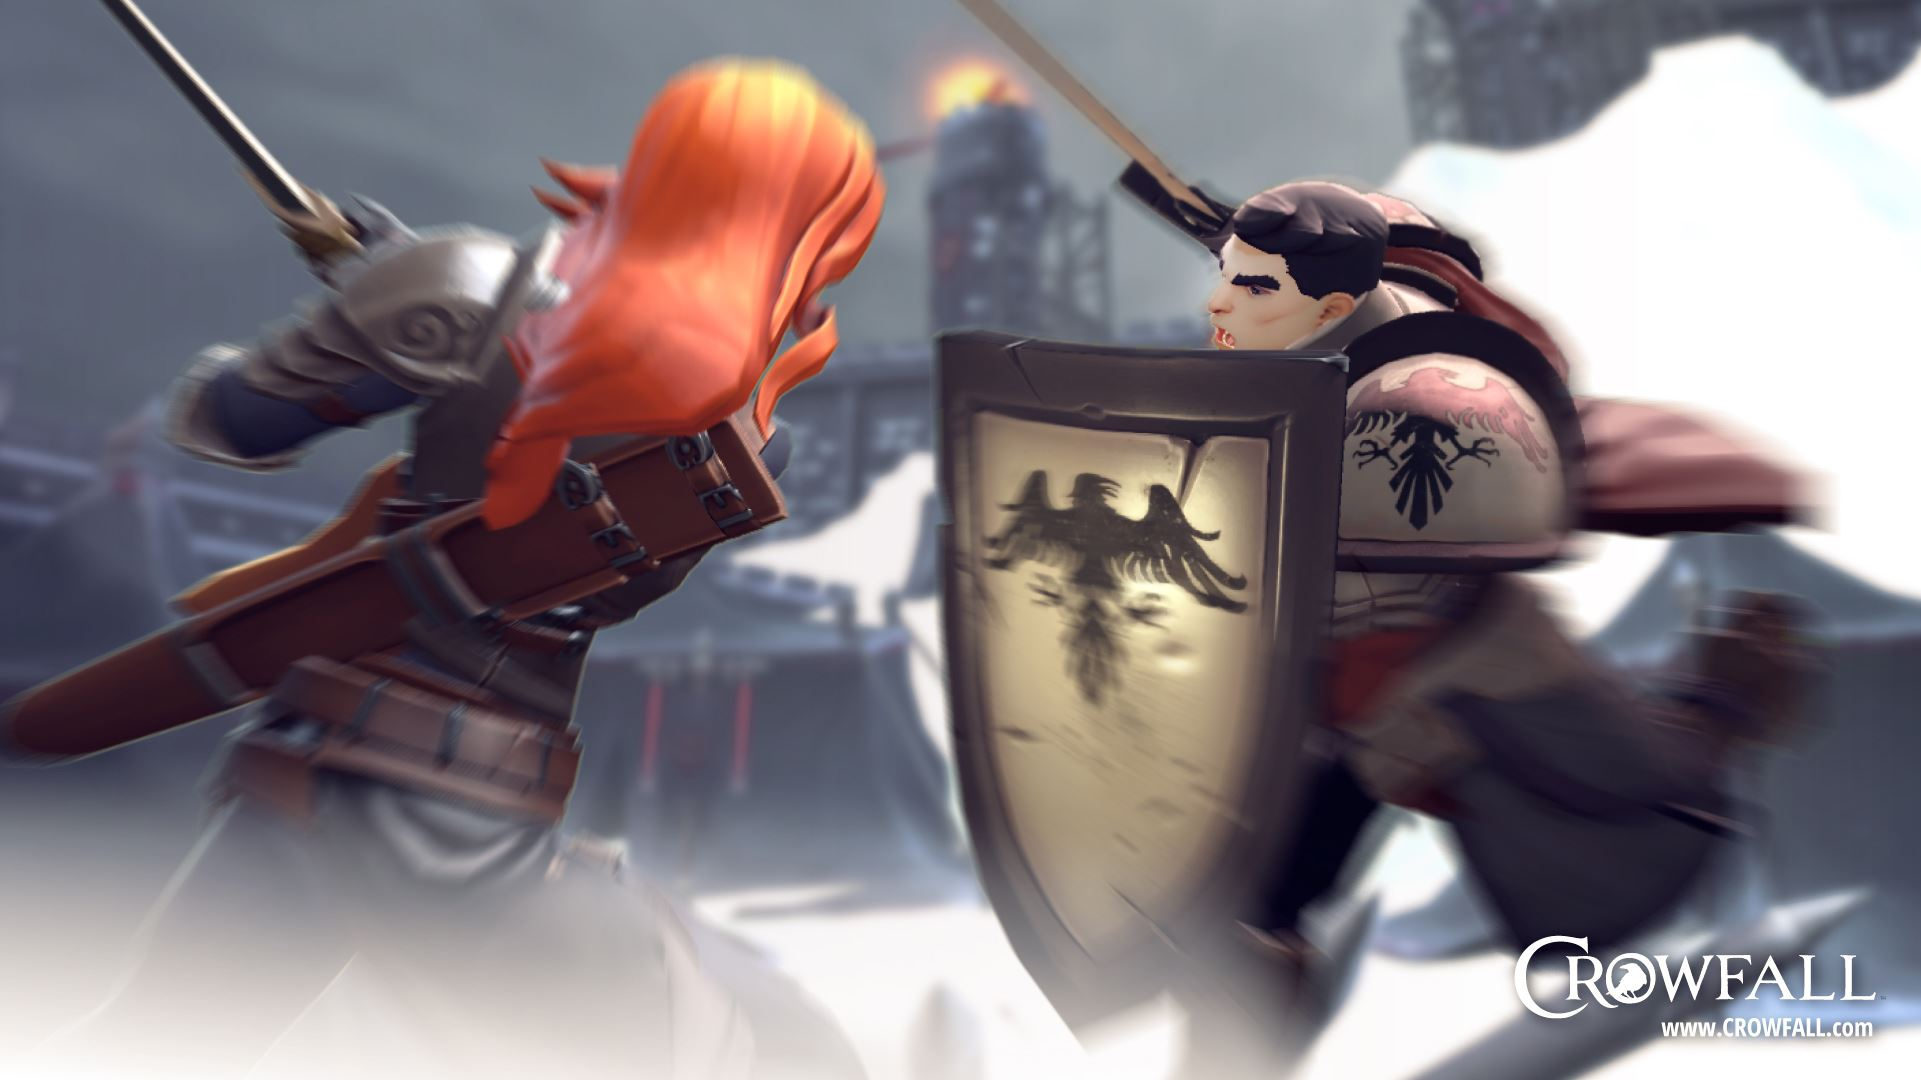 Crowfall: Kickstarter Kampagne knackt die 1 Million Dollar Marke